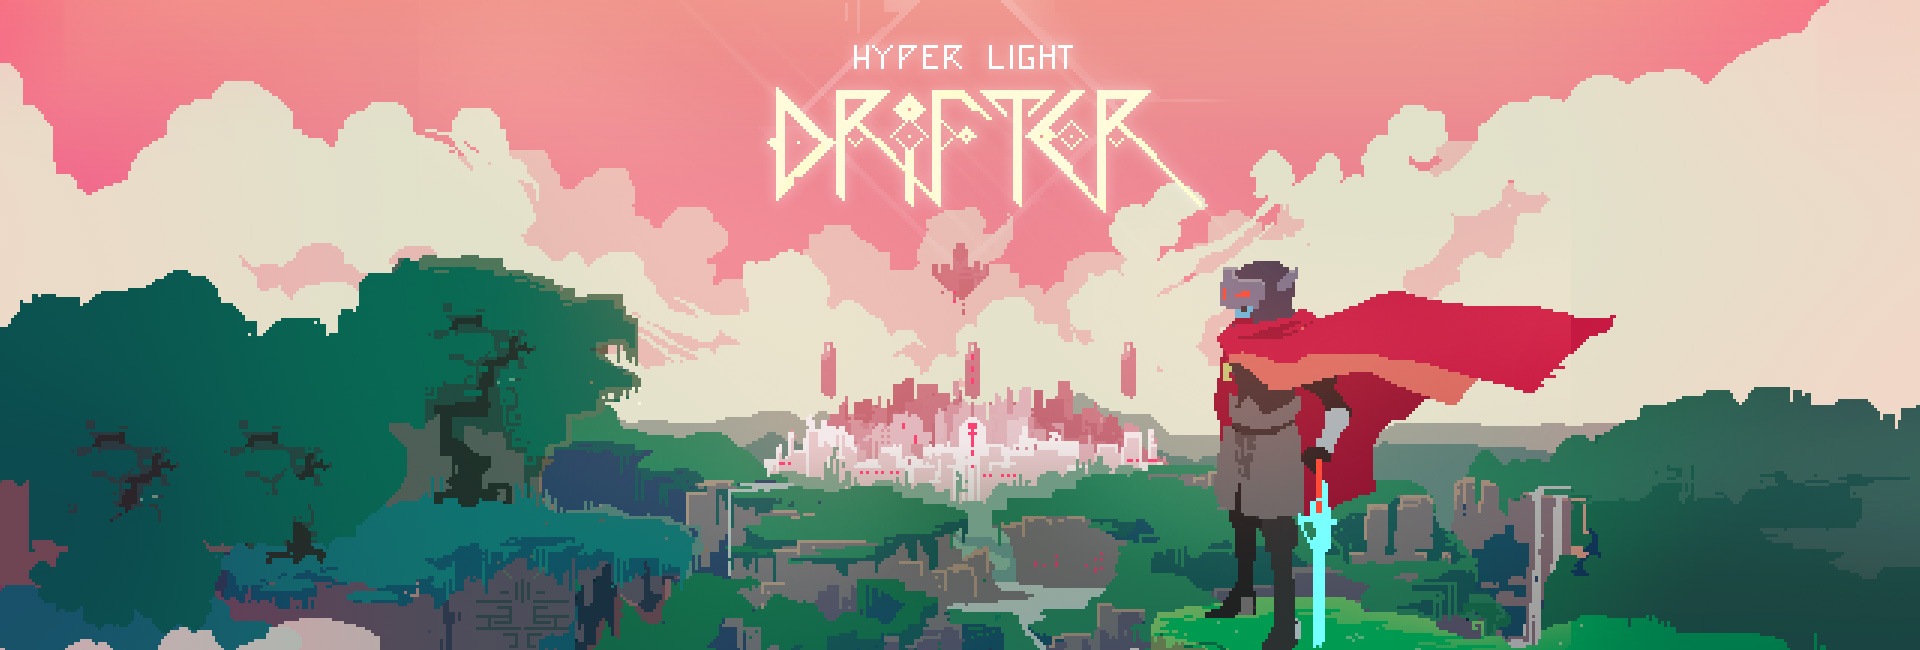 Hyper Light Drifter Indie Game Hyper Light Drifter